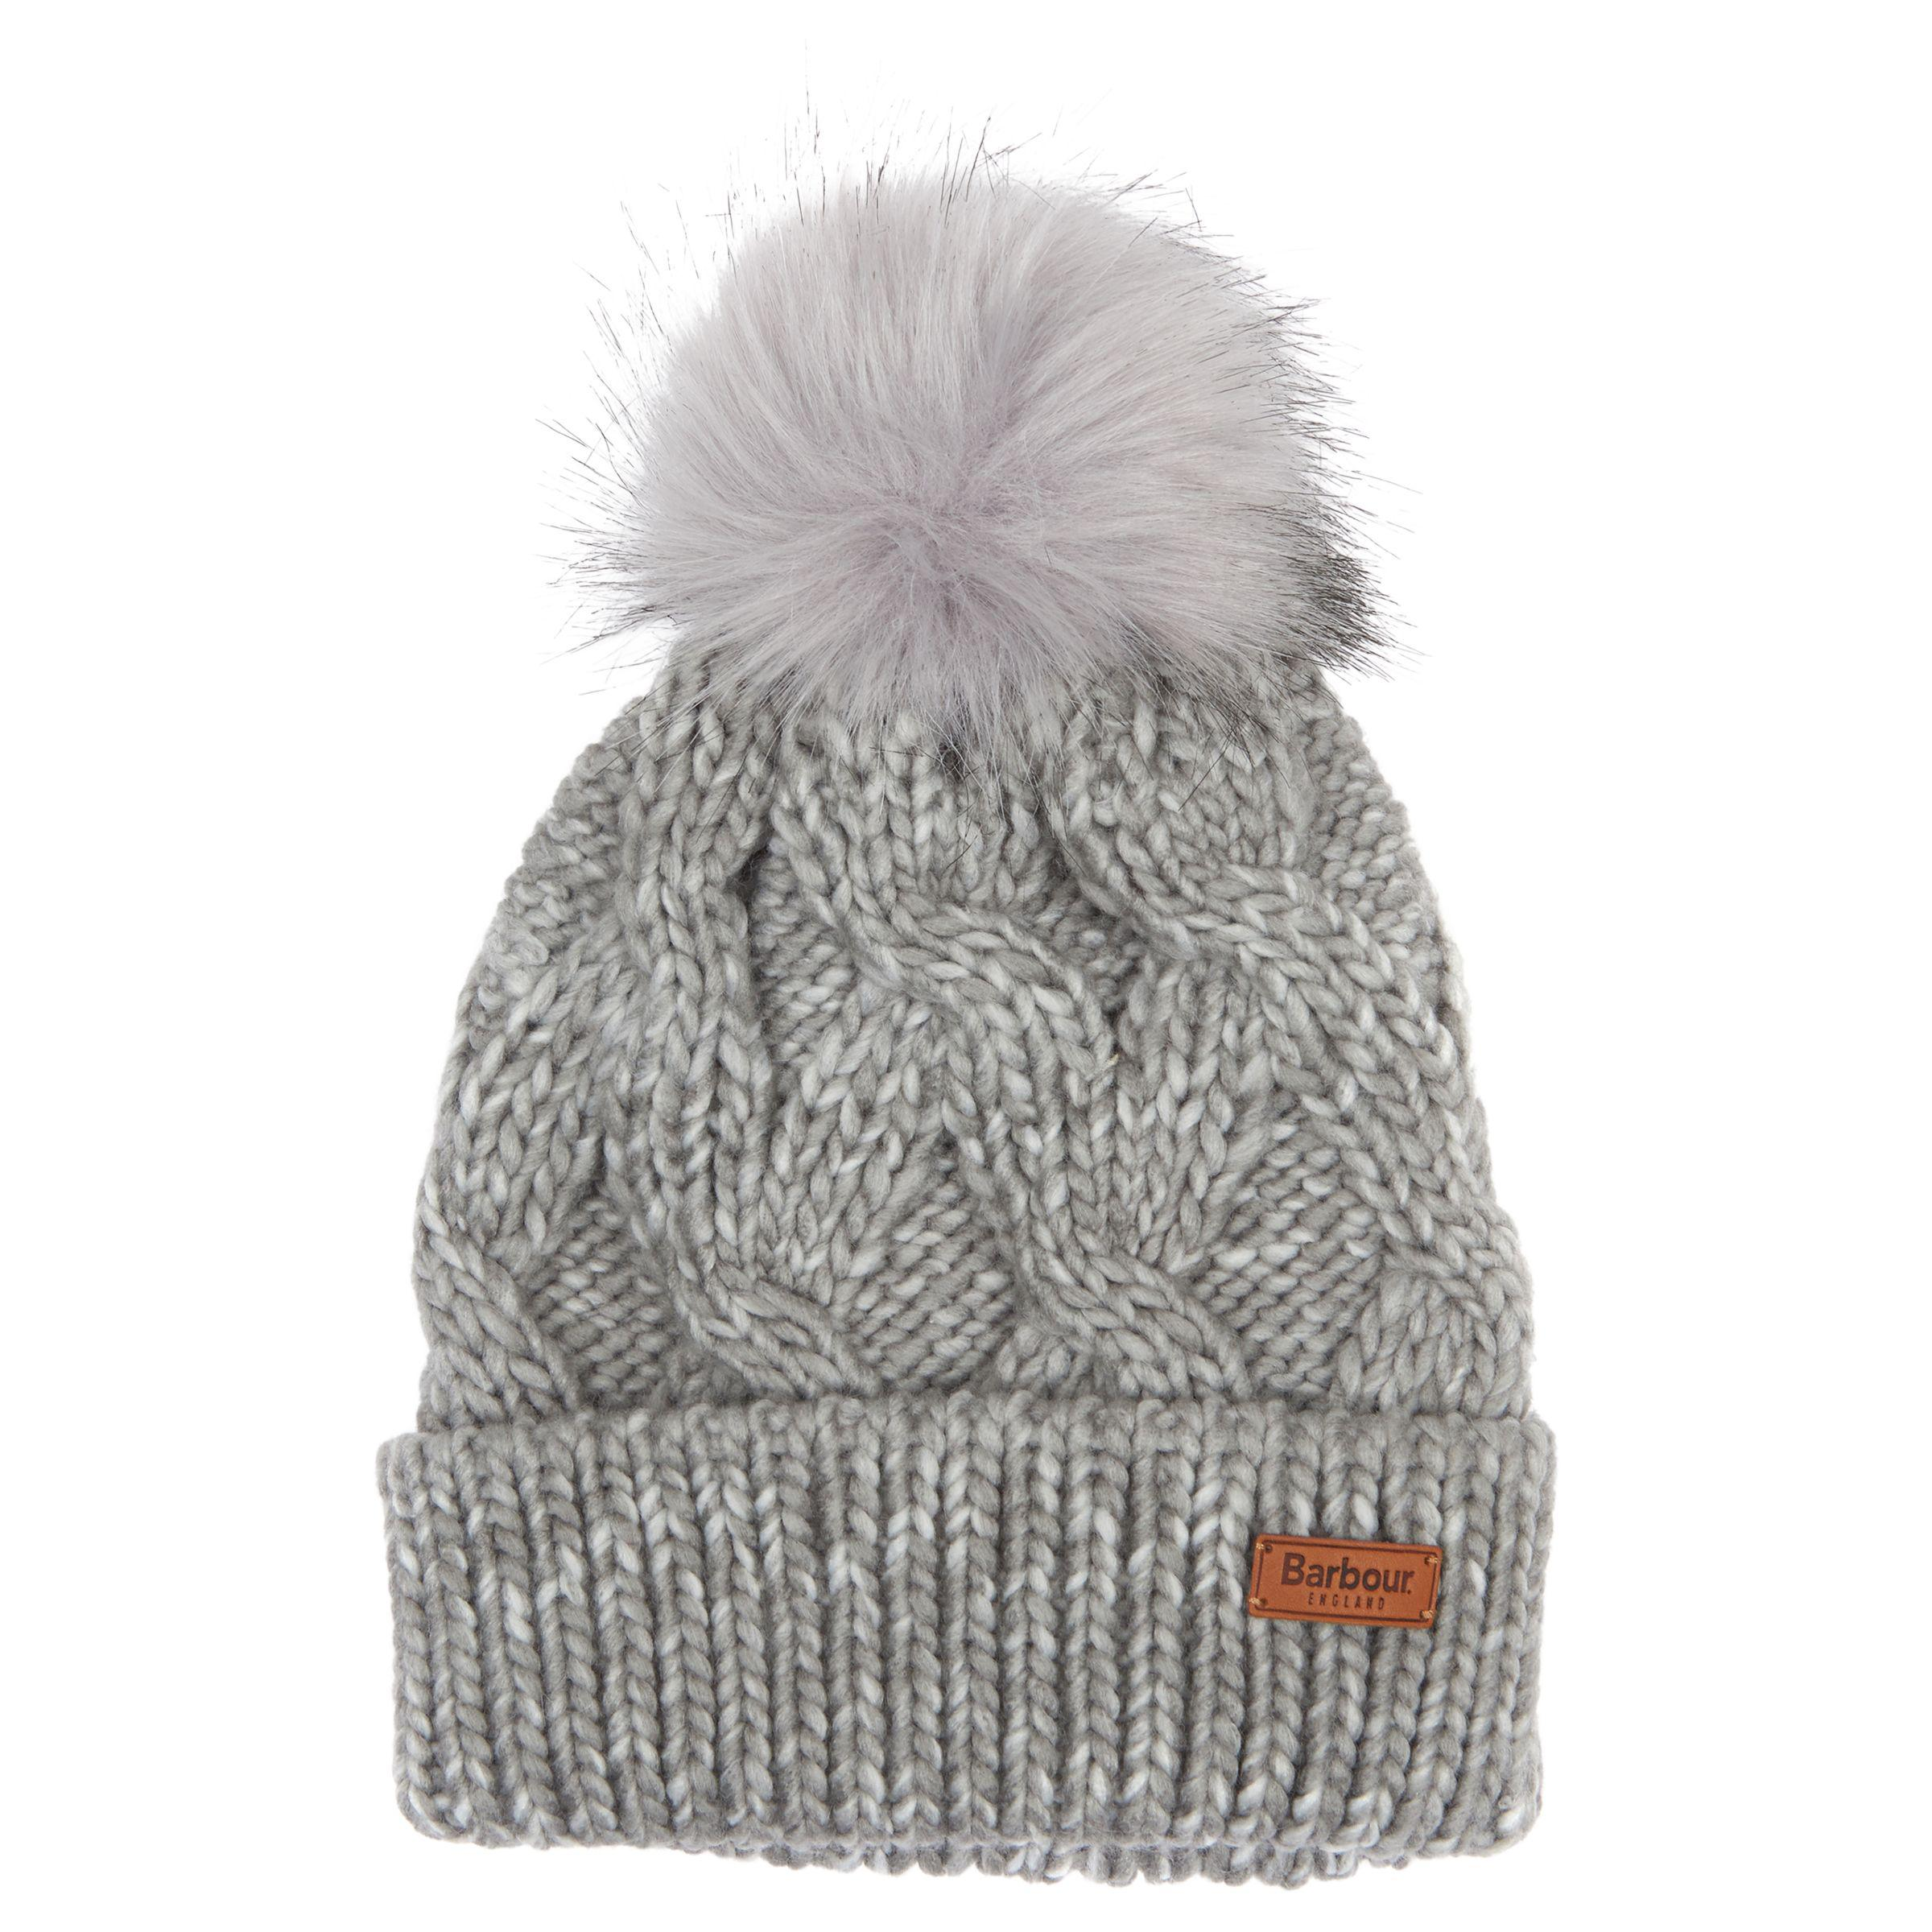 5ad18a2f9d4 Barbour Bridport Pom Beanie Hat in Gray - Lyst